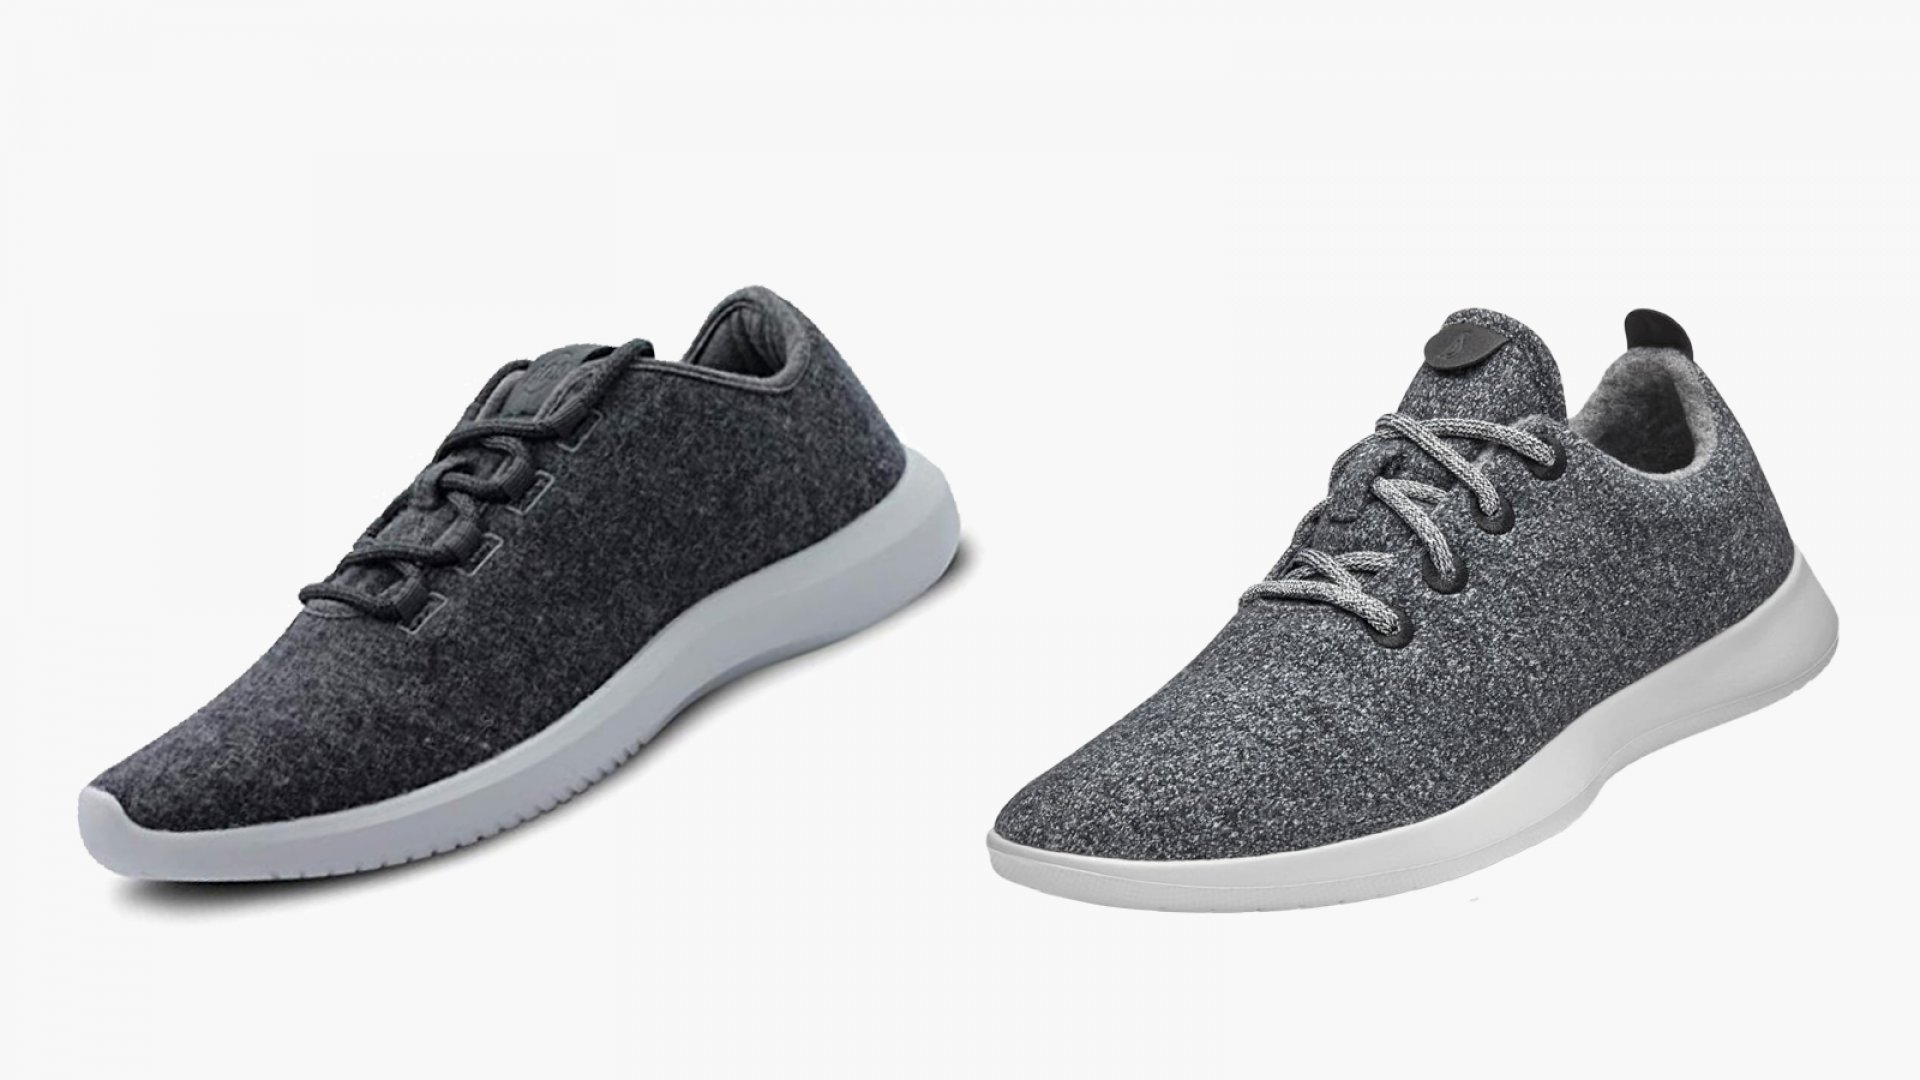 The Amazon-branded sneakers (left) bear a striking resemblance to Allbirds's most well-known product, the Wool Runners (right).